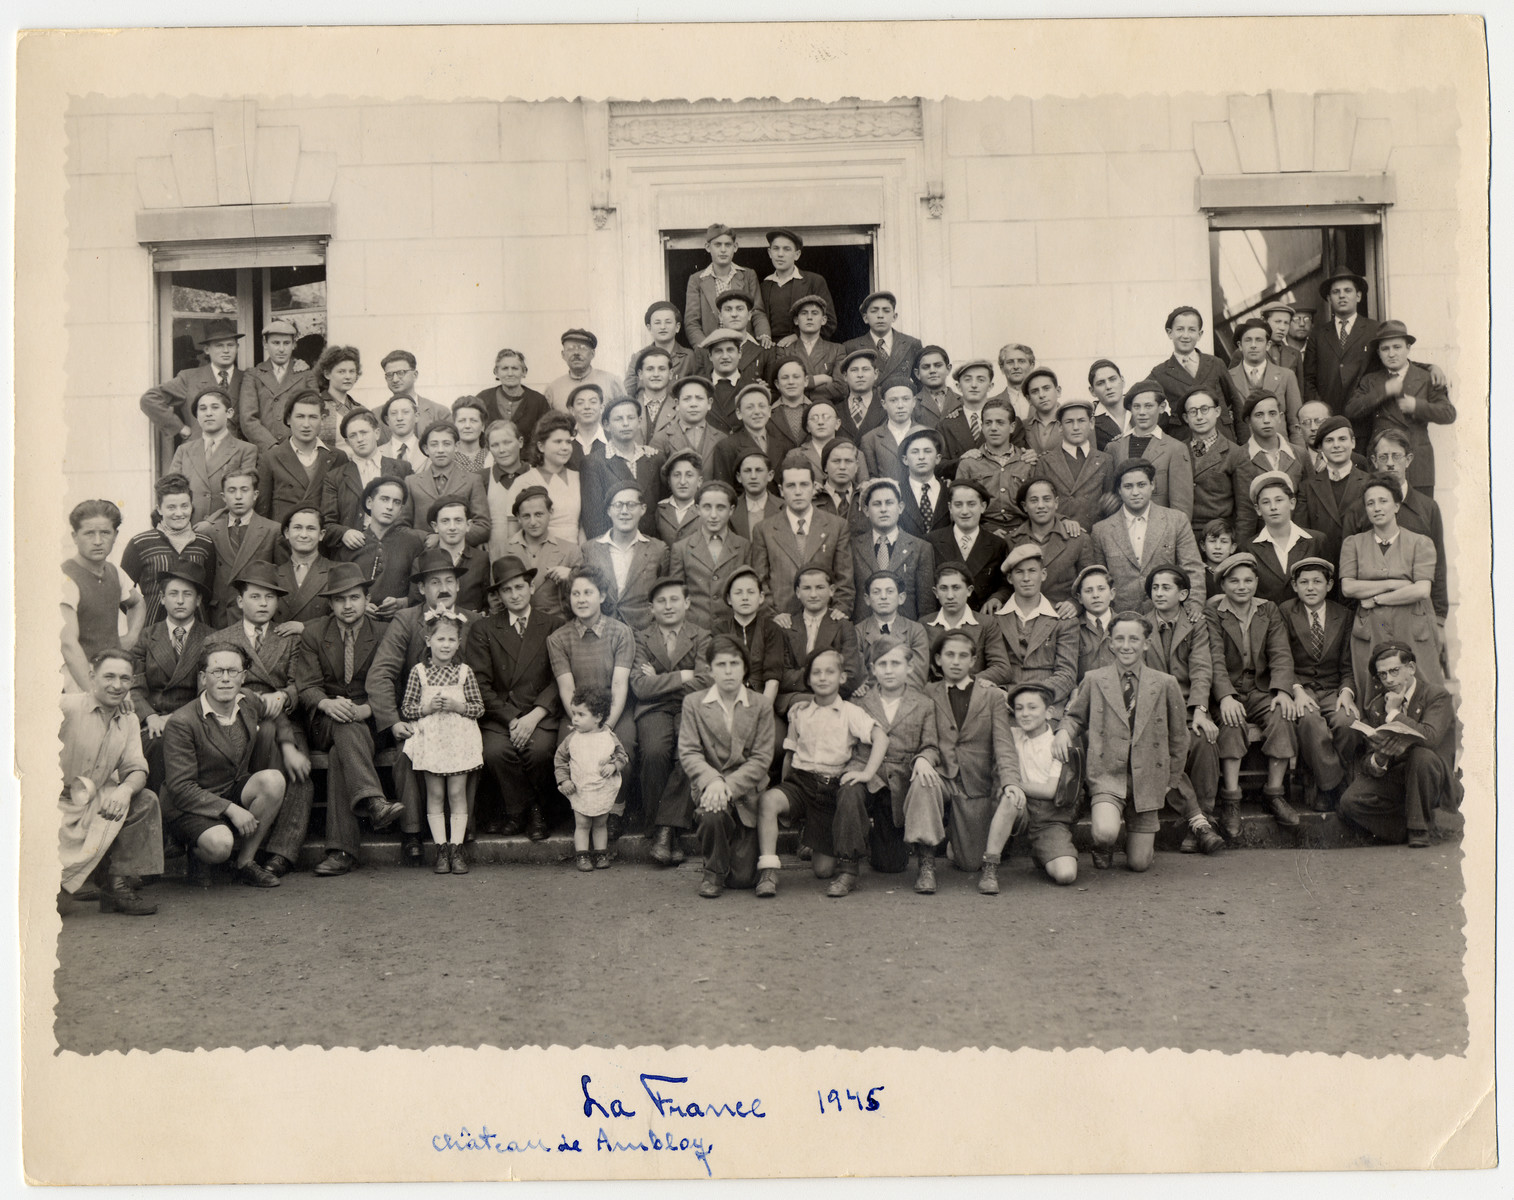 """Group portrait of the staff and boys of Ambloy, an OSE home for religious youth.  Among those pictured are (First row, left to right): Natan Szwarc, Izio Rosenman, Deblin, unknown and Berek Rybsztajn.  (Third row): Abraham Tuszynsky (2nd from left, first boy next to woman), Andre Zelig is in the center with a tie and his hands on the boy in front of him and Elie Wiesel (second right of Tuszynsky).  Binem Wrzonski is to the right of Elie Wiesel.  The donor, Jakob Rybsztajn is in the fourth row, fifth from the left.  Pictured in the center to the right of the woman in white is Motjes Kaufman.  The inscription on the back reads """"Before our departure from Chateau Ambloy for Paris""""."""